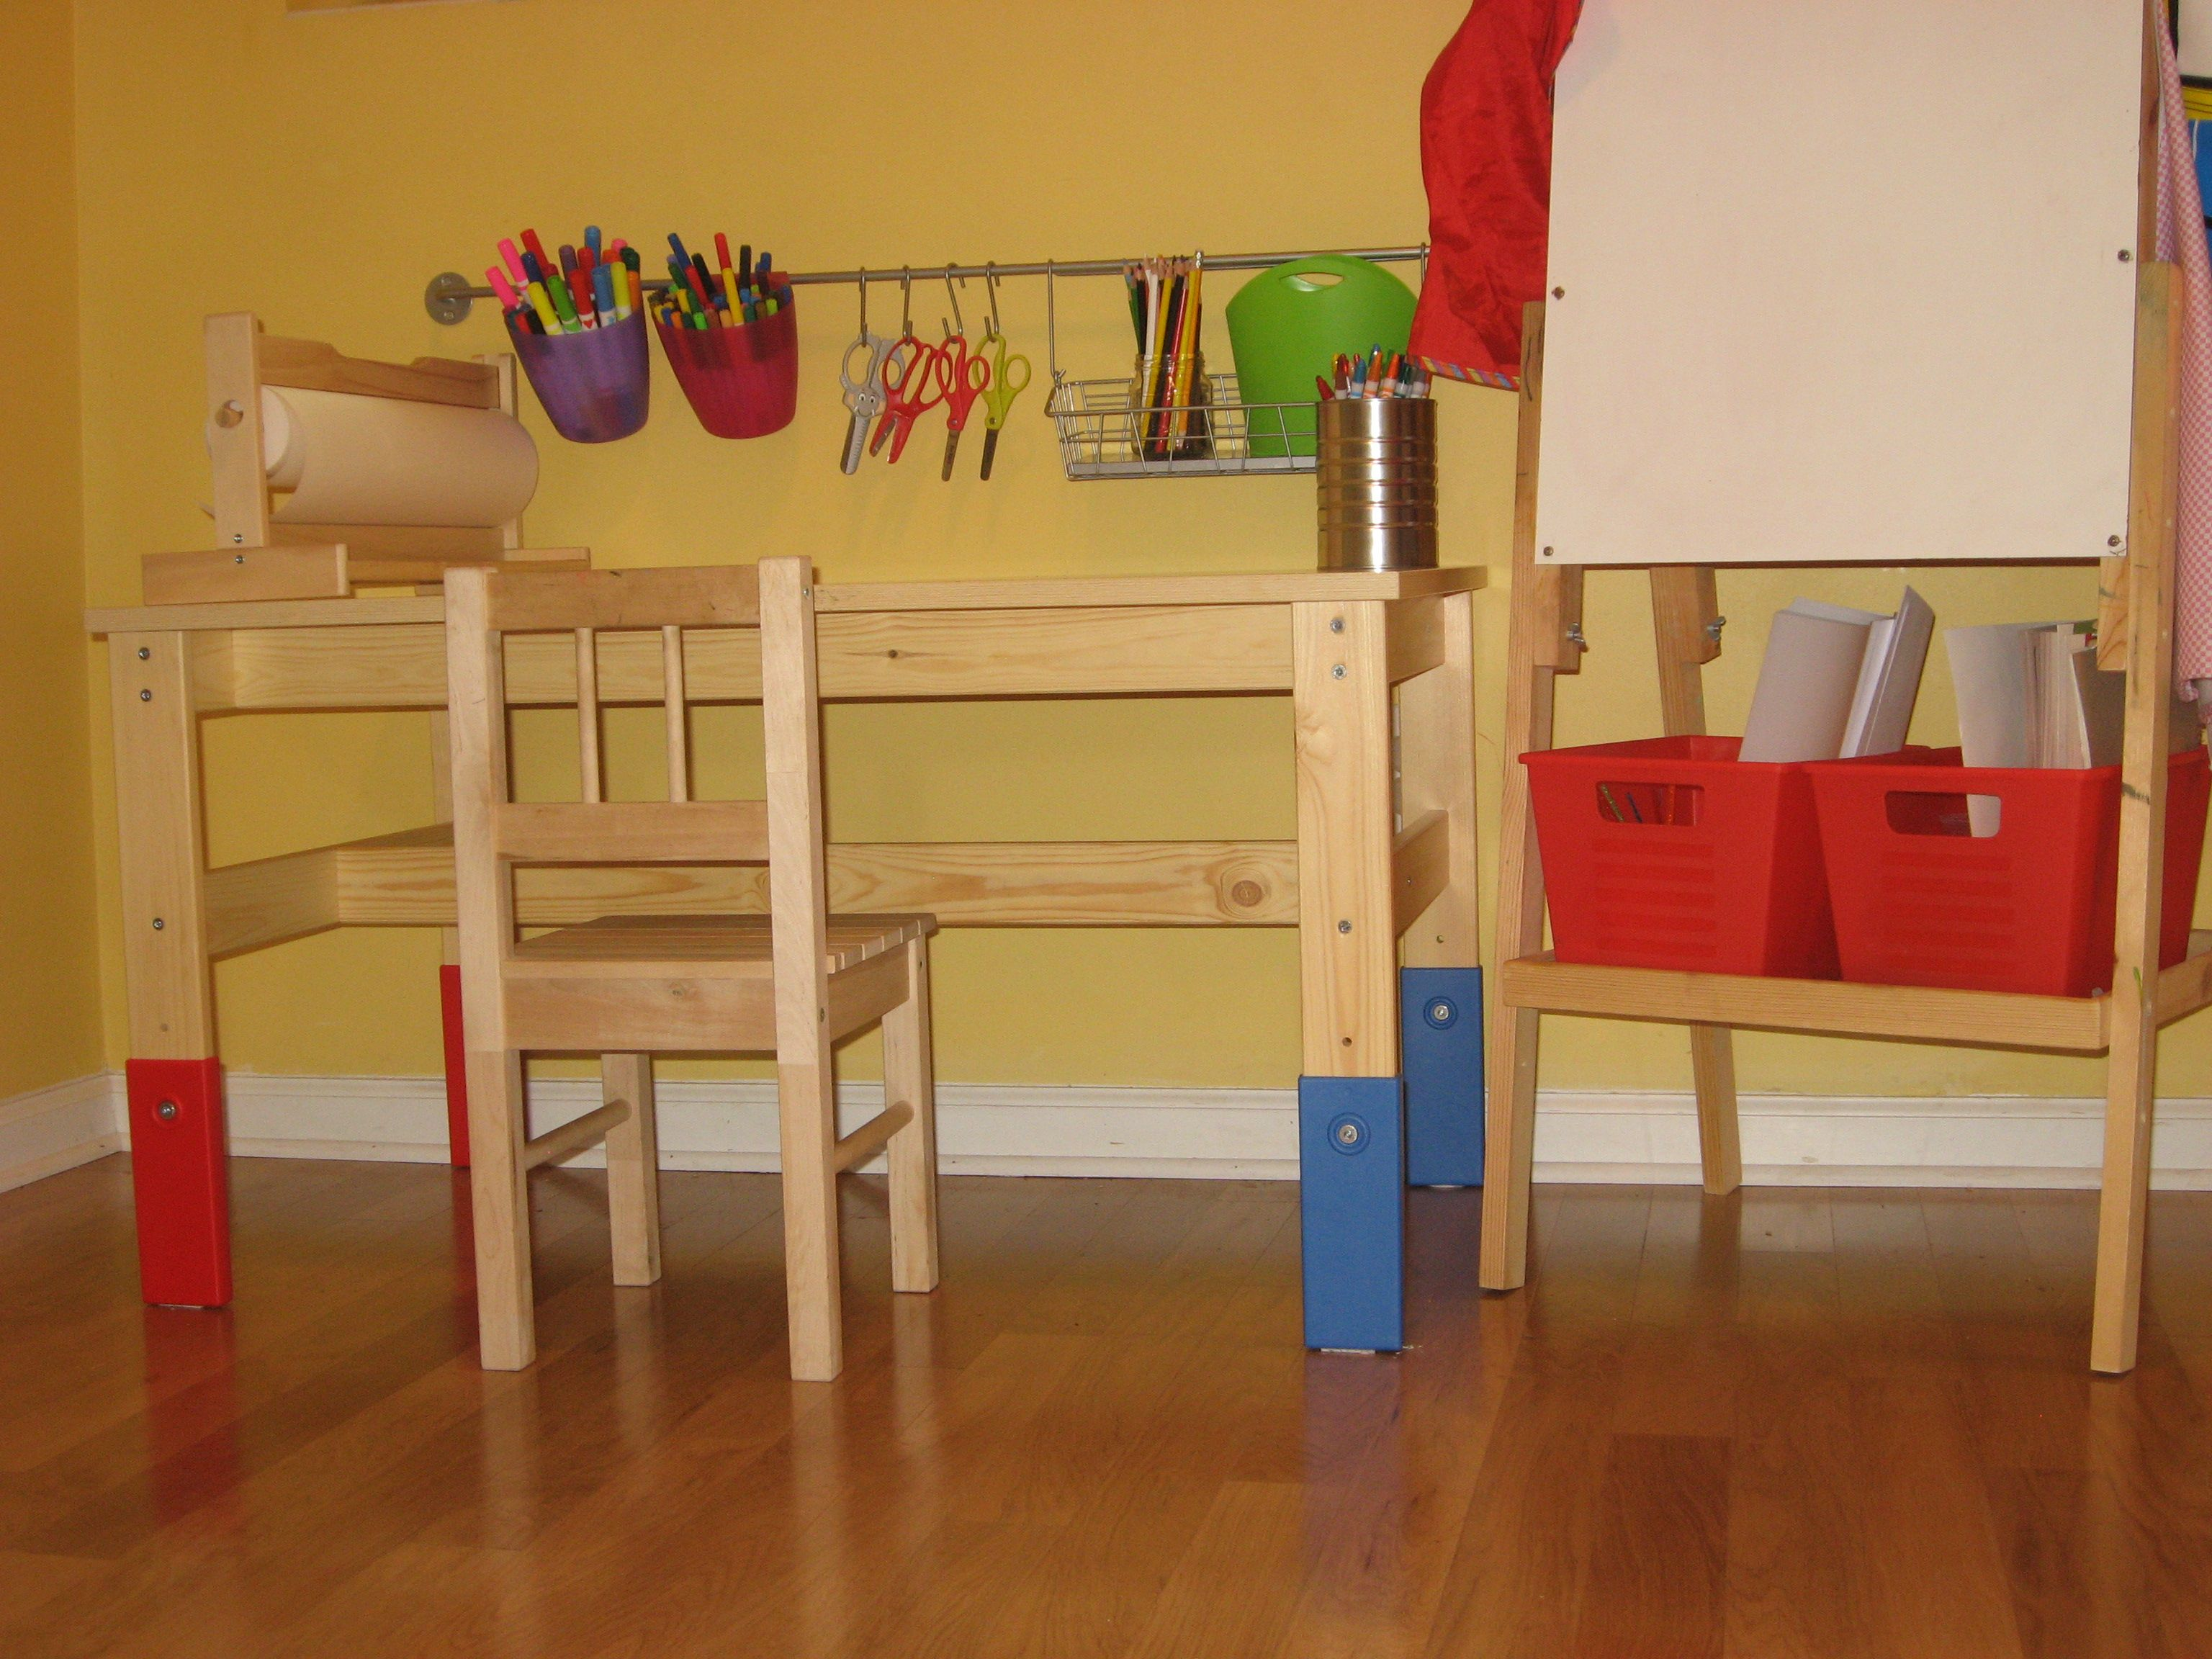 Ikea kids table and chairs - Our Kid Friendly Art Center Ikea Table Chair Paper Roll Rail